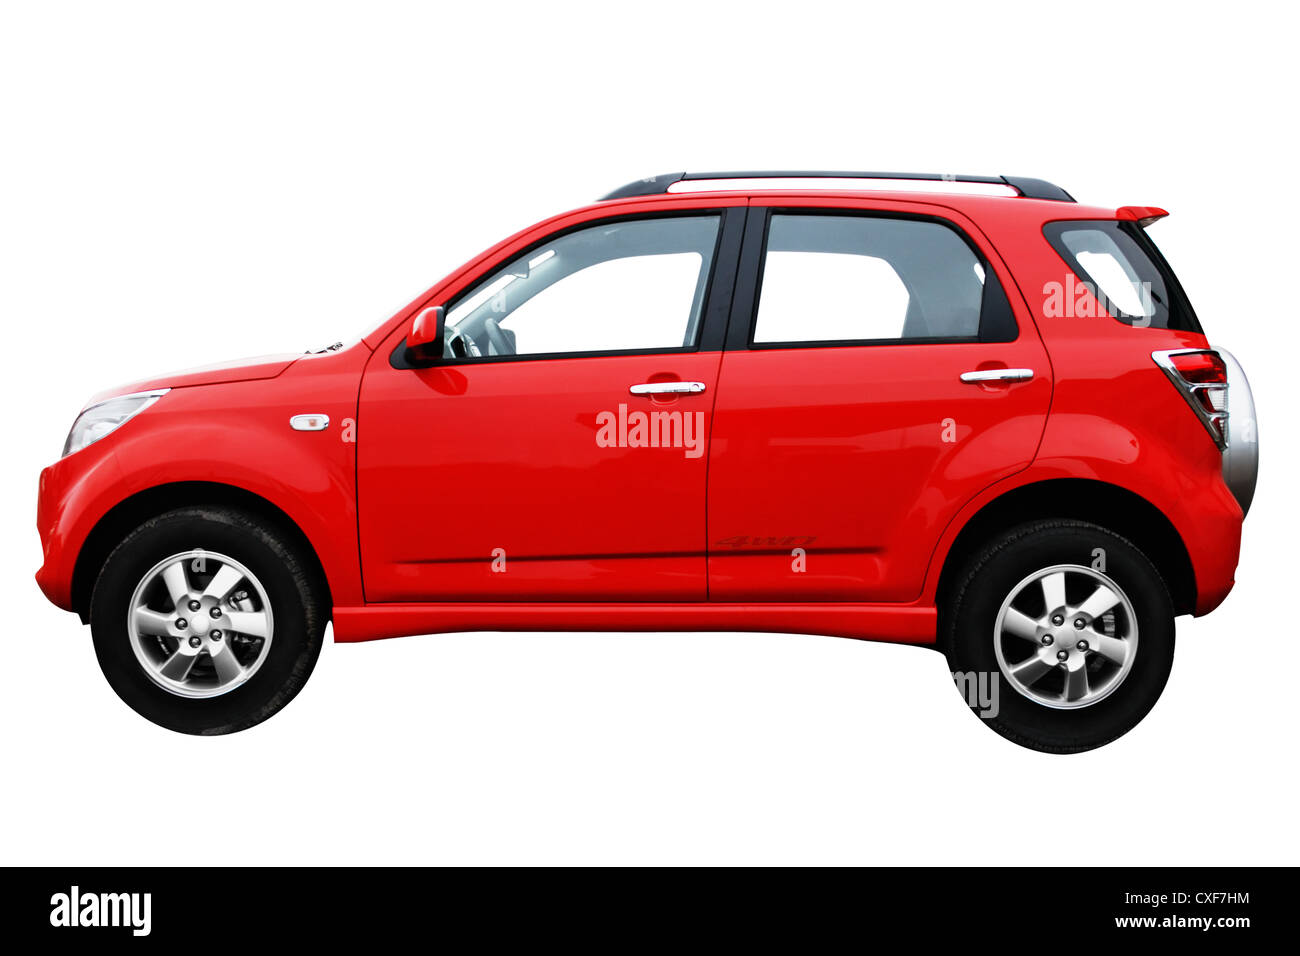 Red modern new car isolated on white background, side view - Stock Image